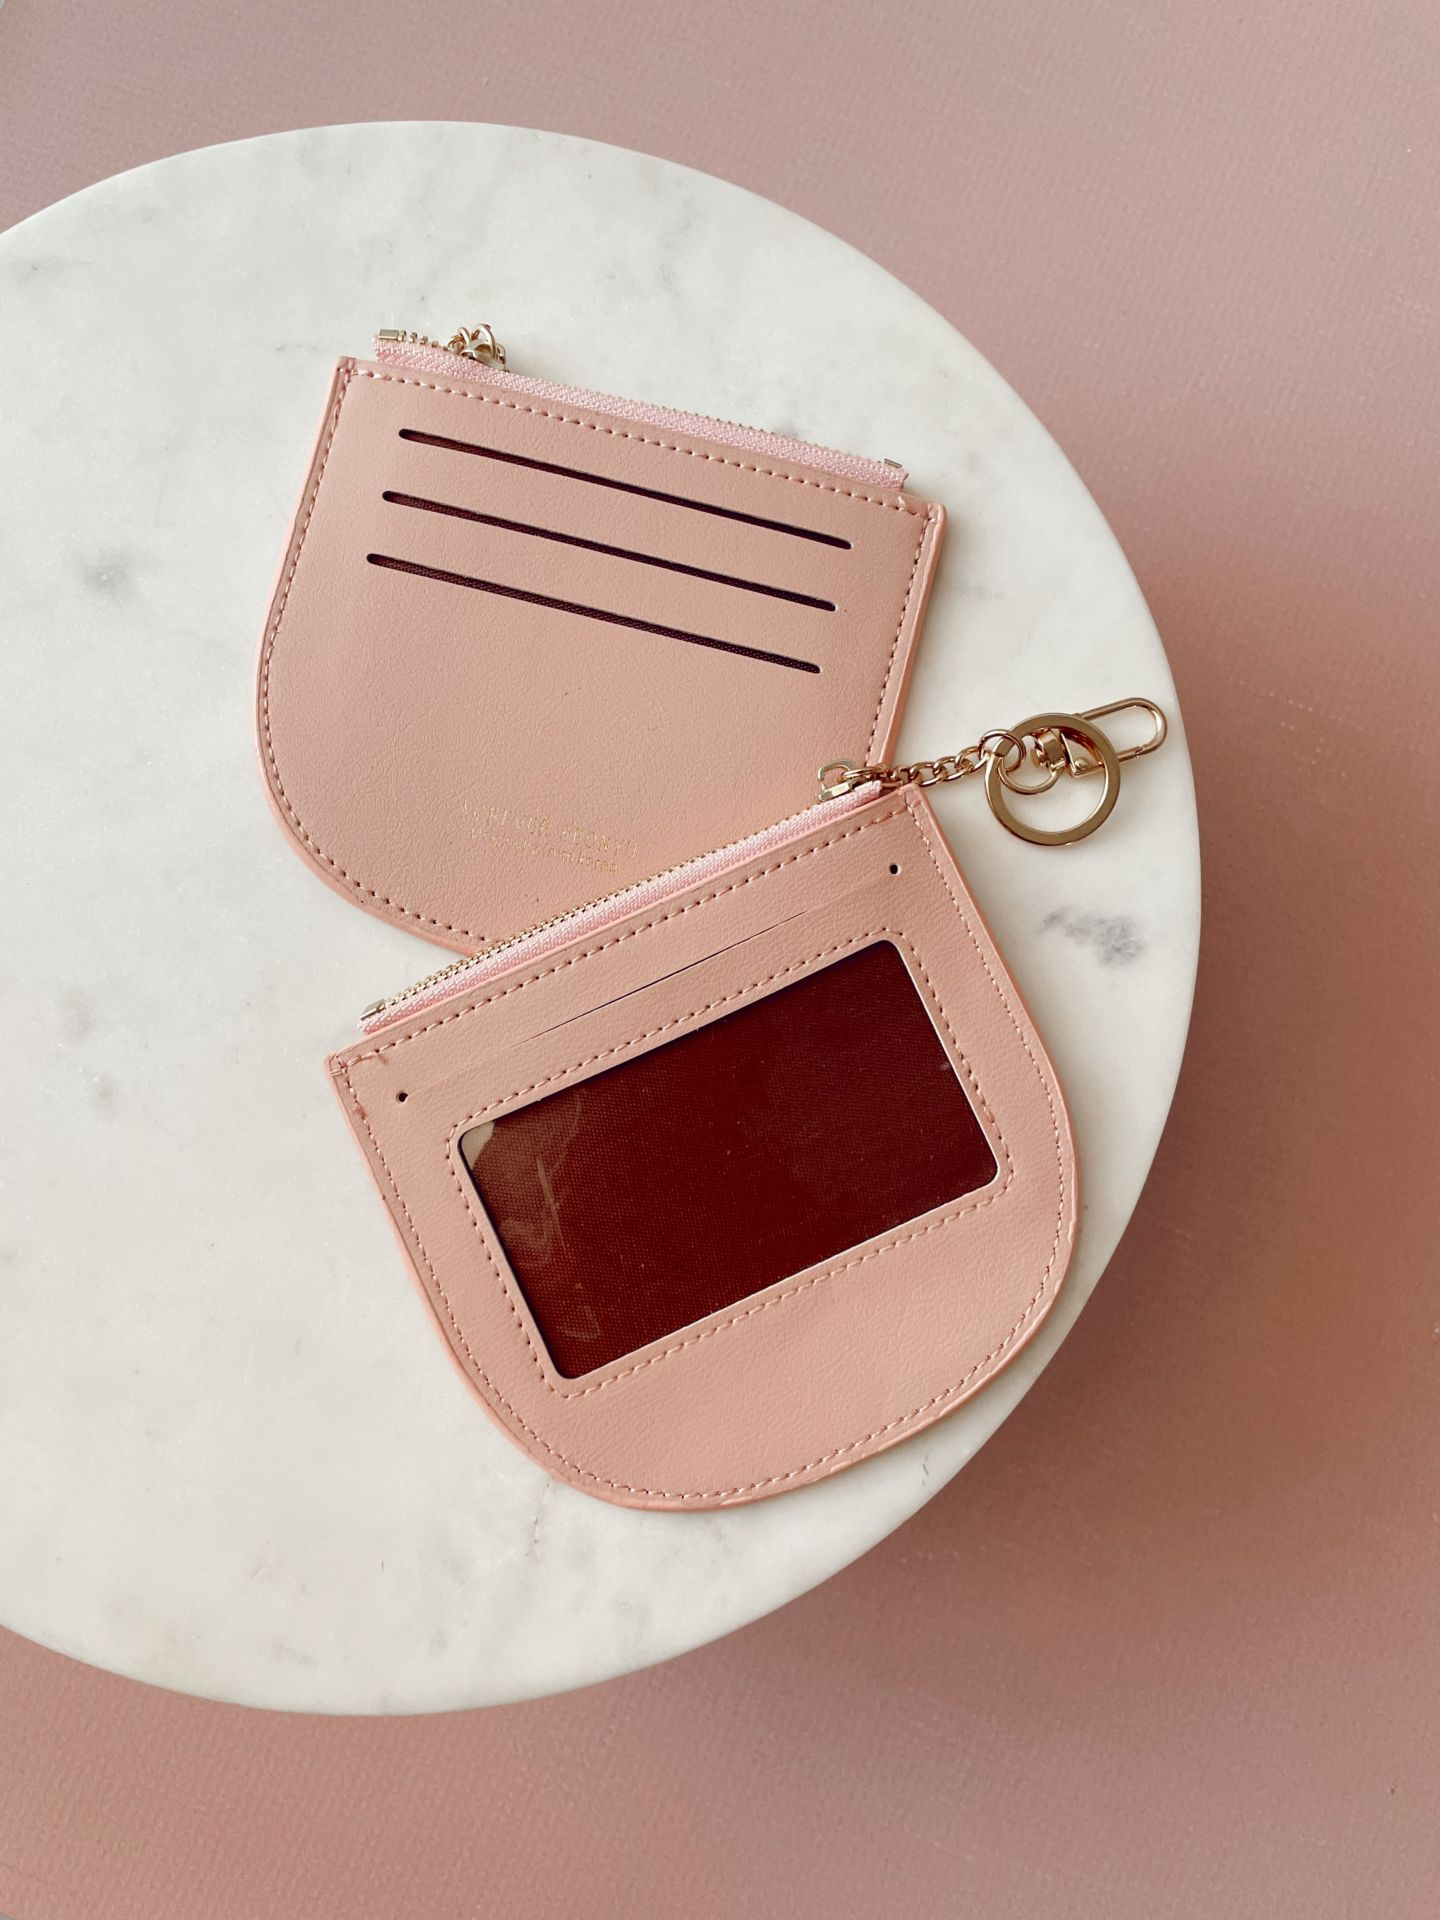 Card Holder with Key Chain - Pink